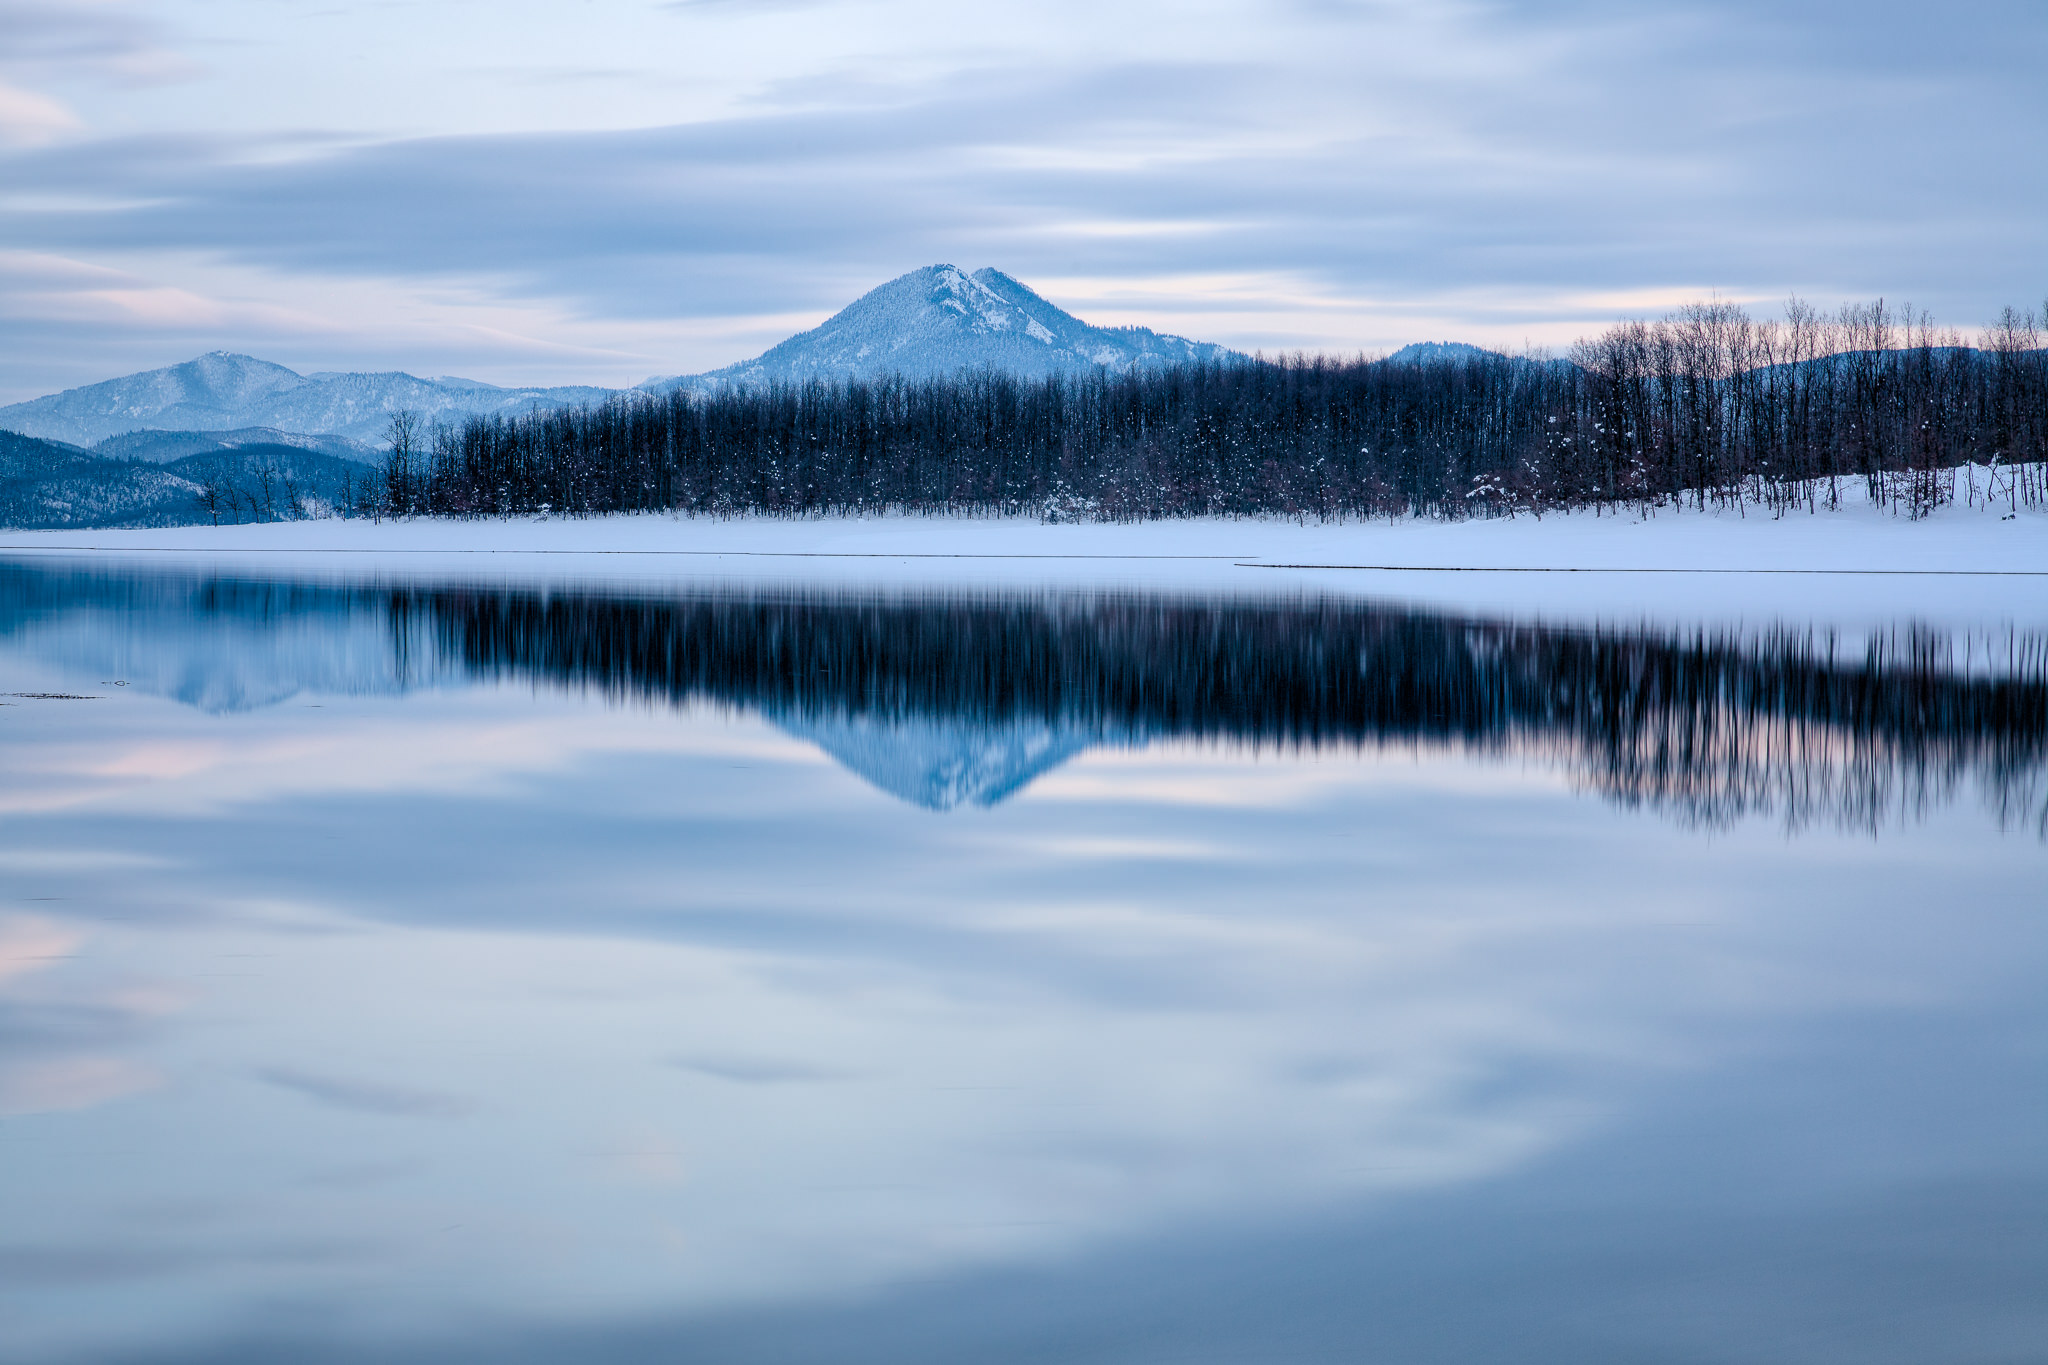 Borlero peak mirrored on lake Plastira - Karditsa